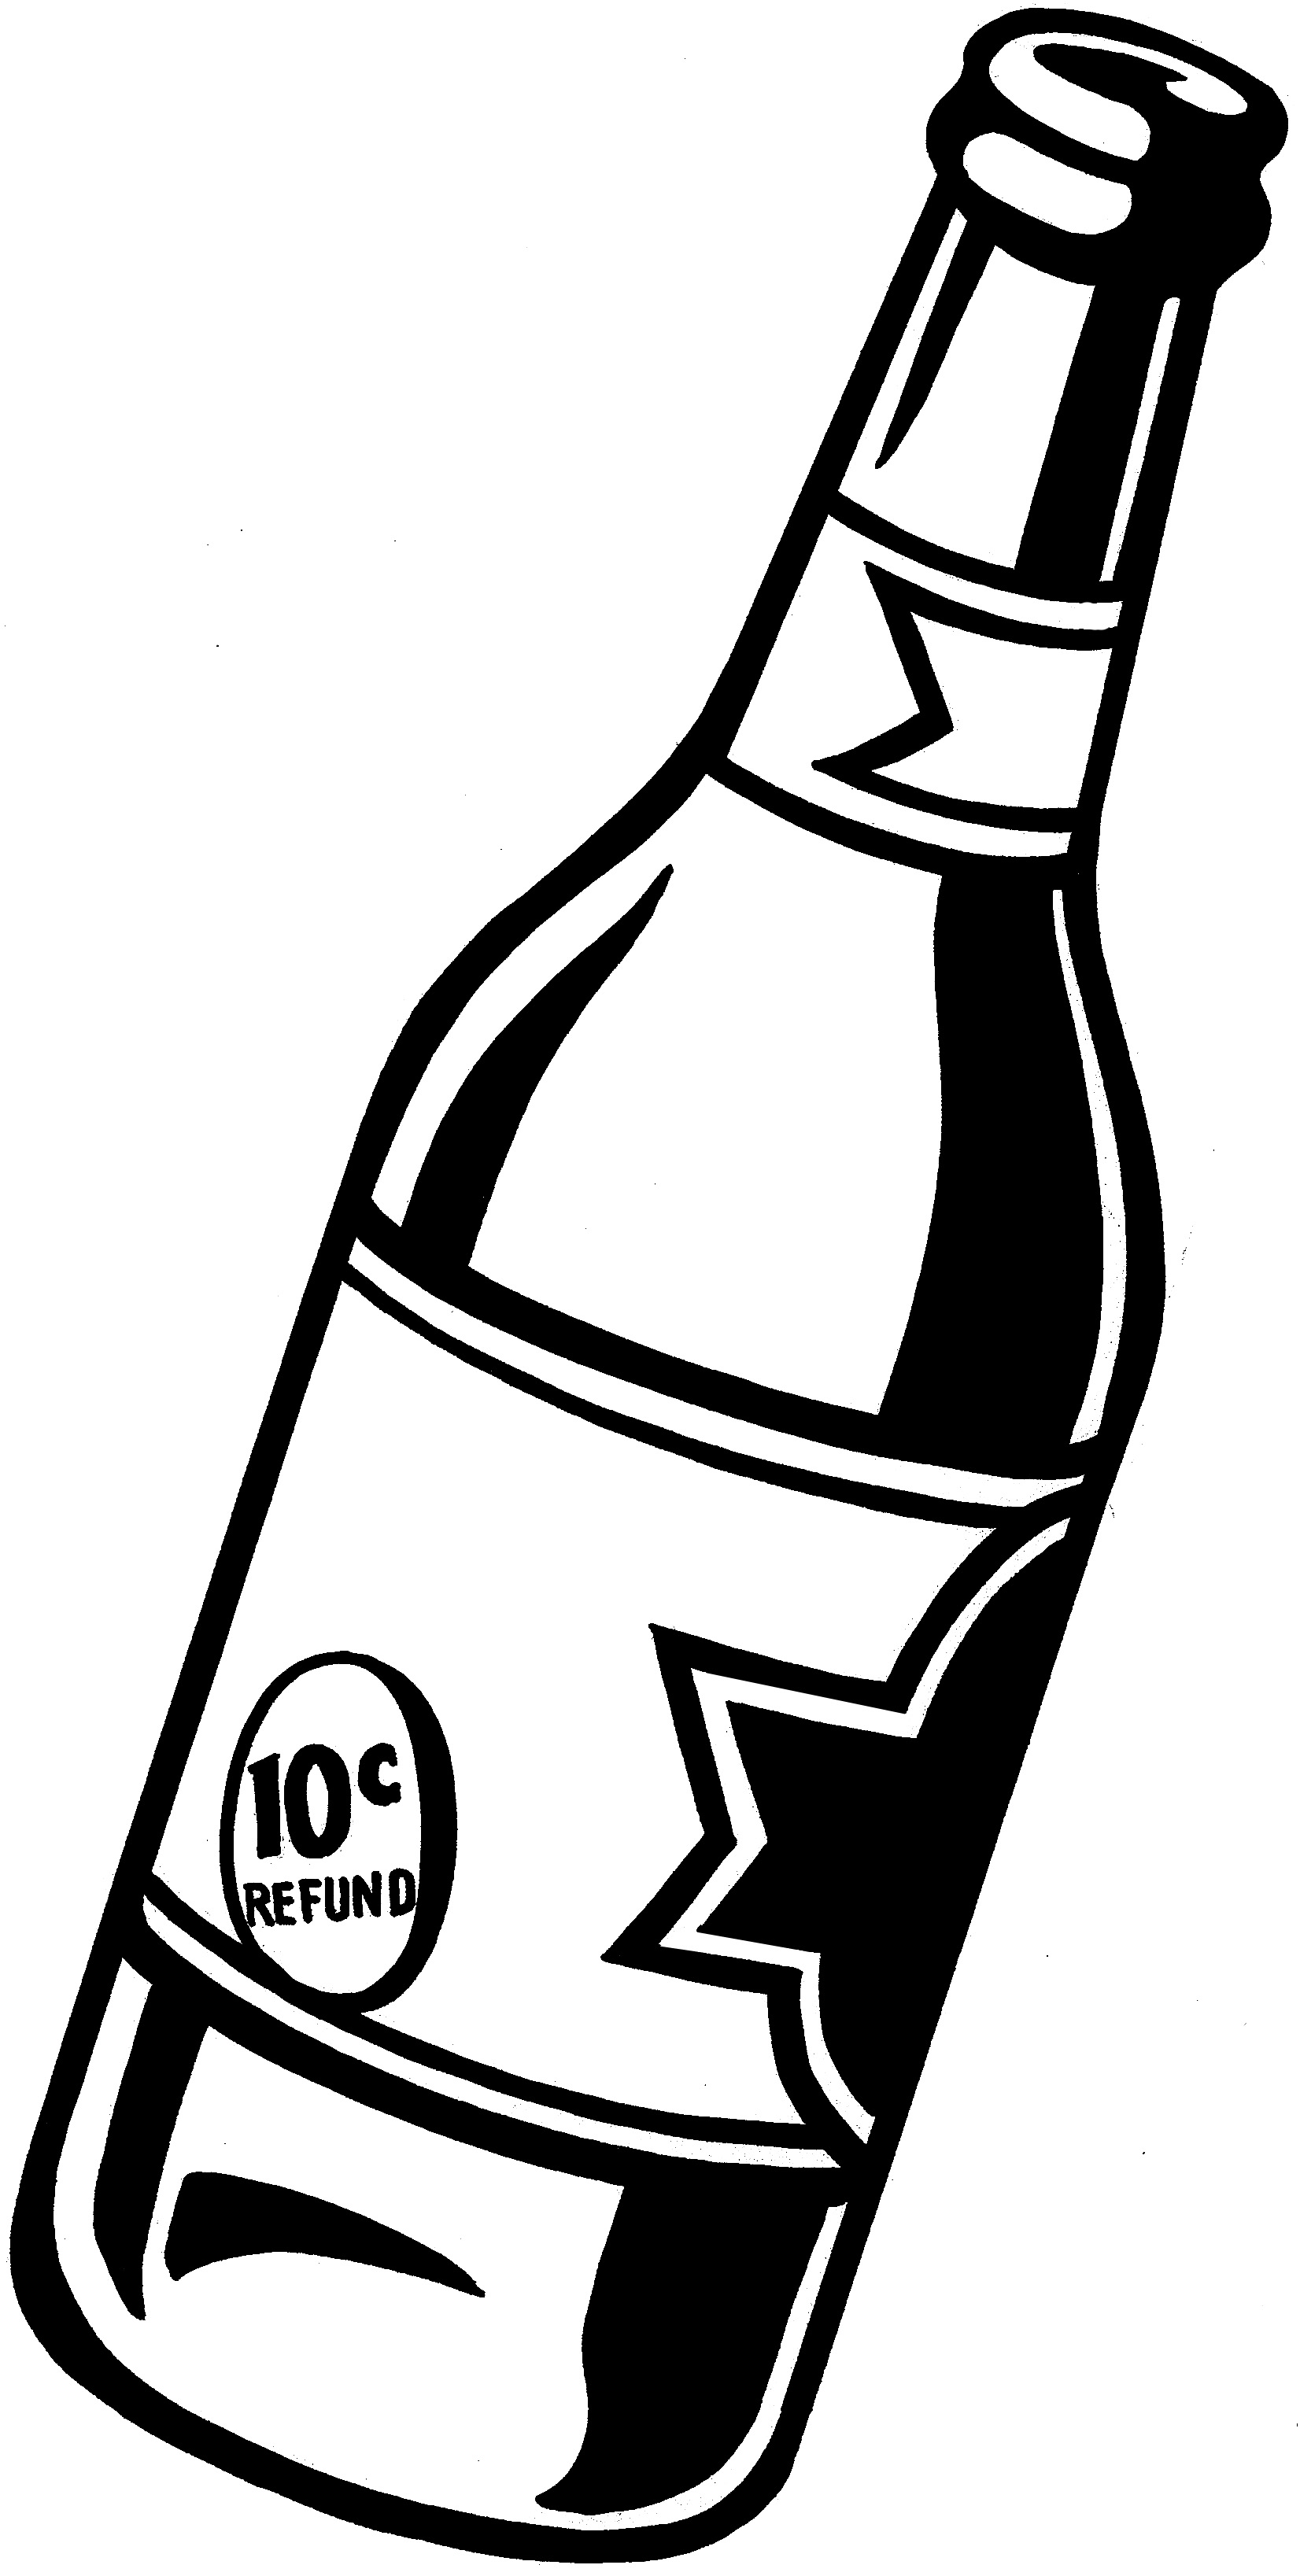 Beer Bottle Black And White Clipart.